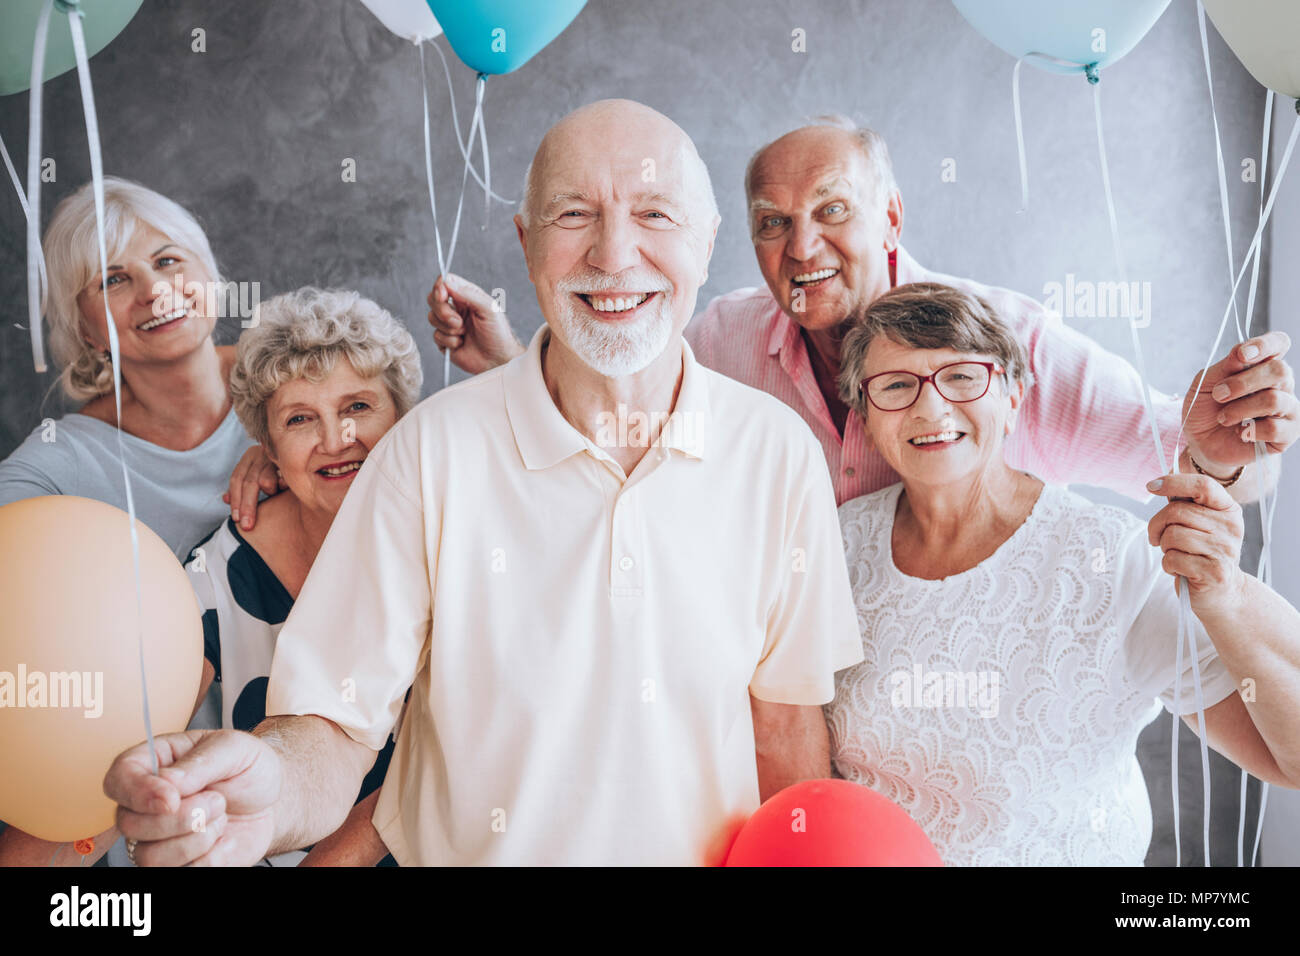 Smiling elderly man and his friends with balloons enjoying his birthday party - Stock Image